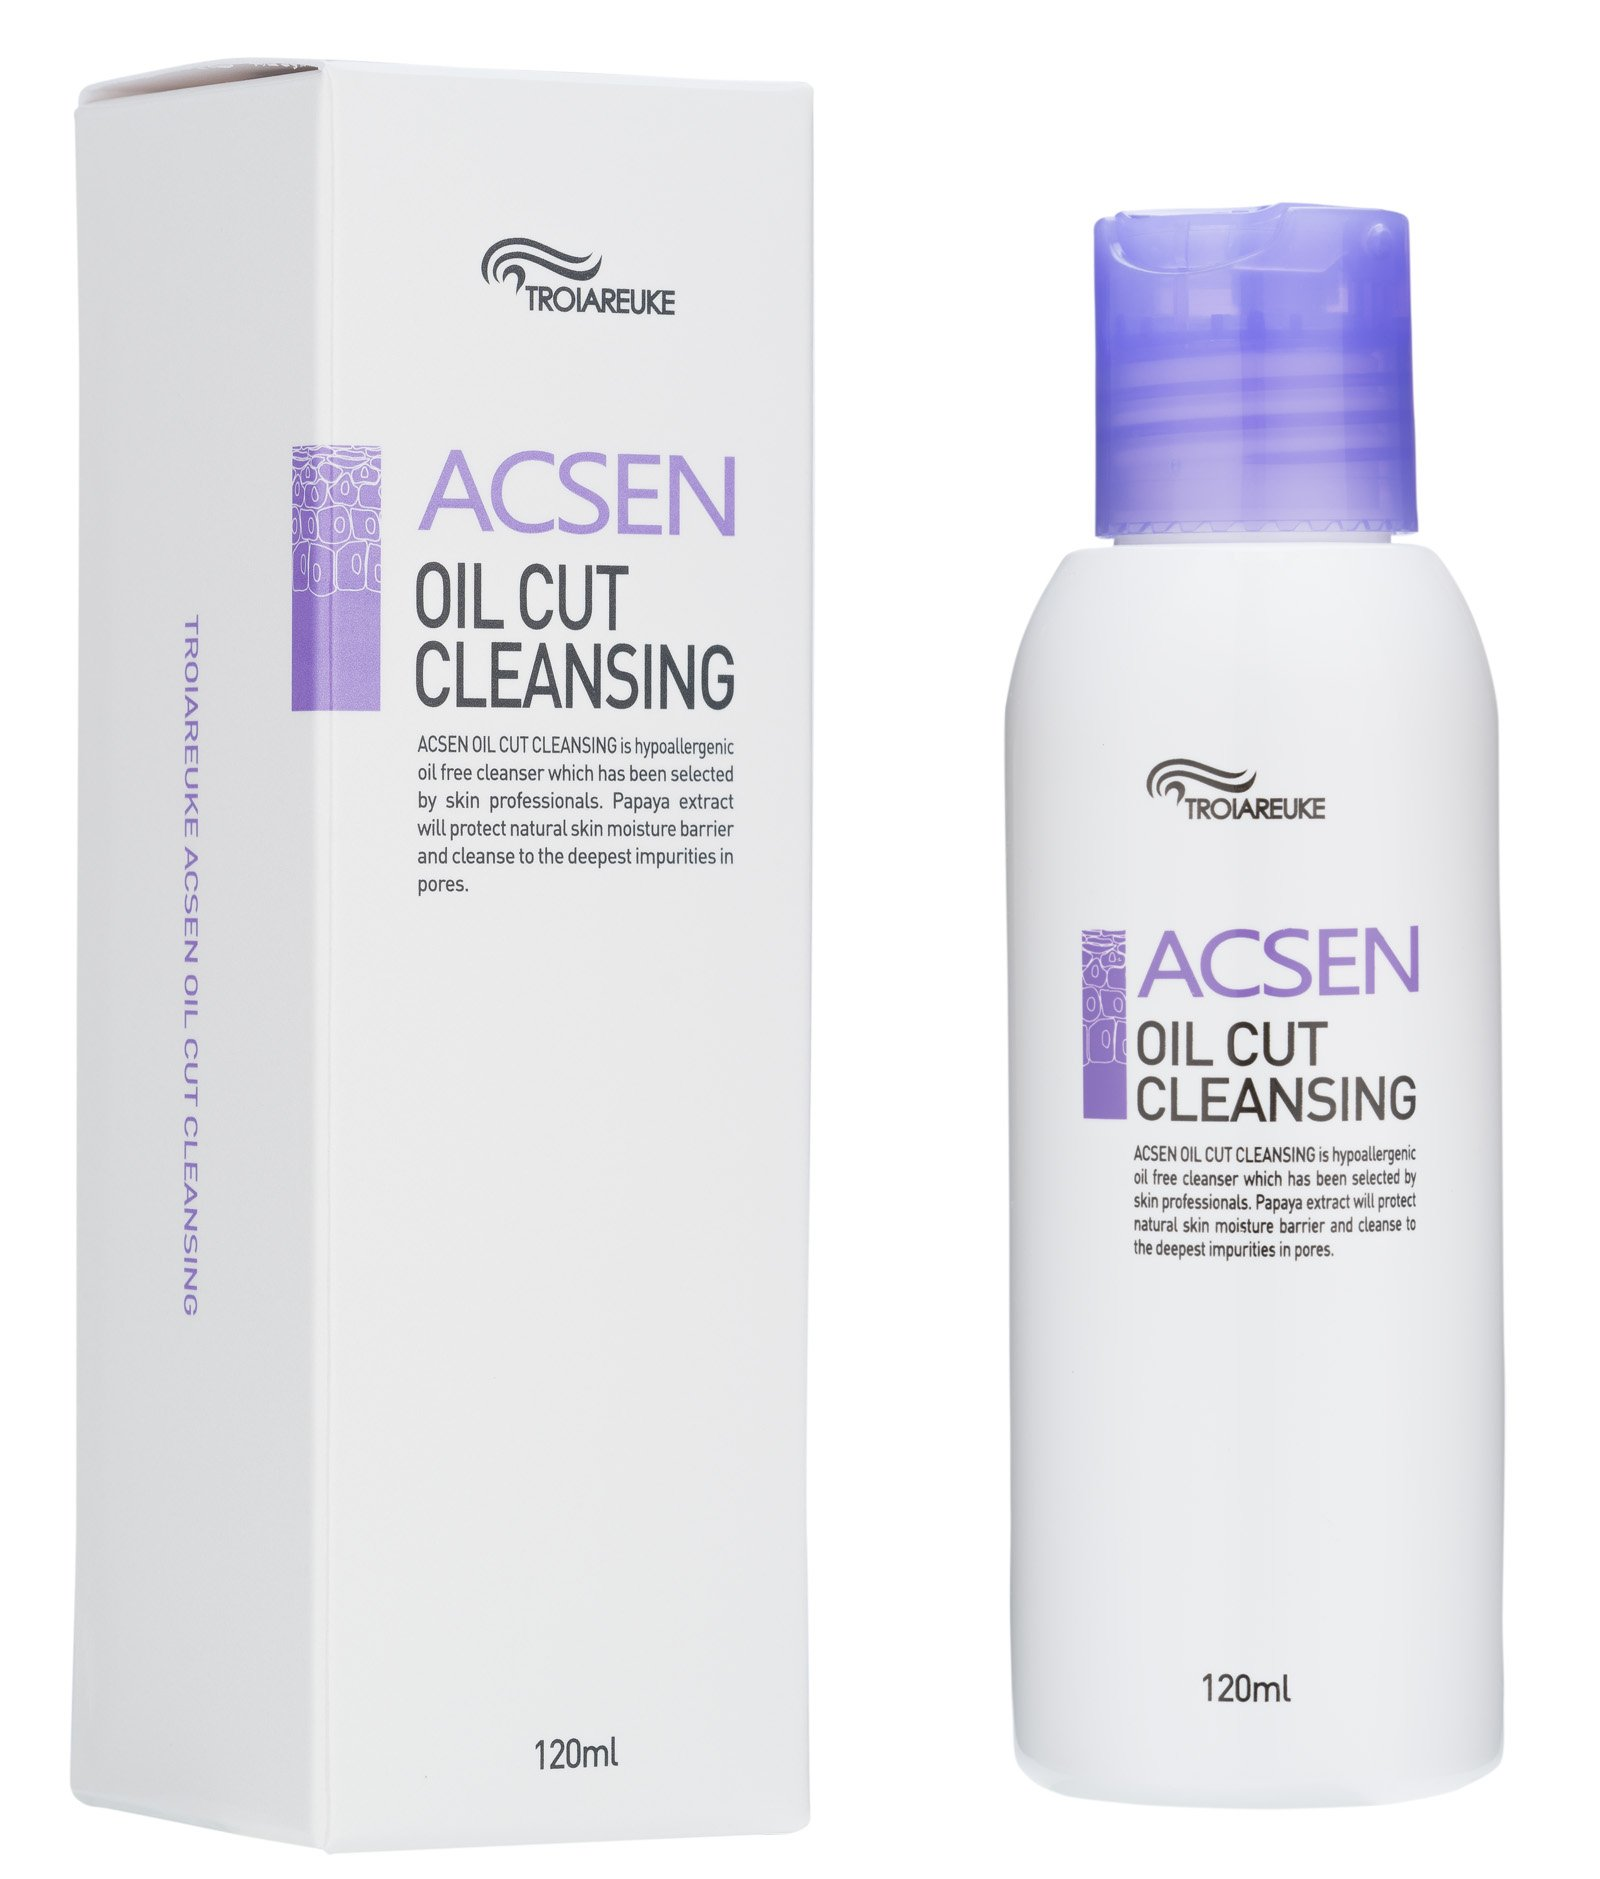 [TROIAREUKE] ACSEN Oil Cut Cleansing 120ml / All in One Cleanser